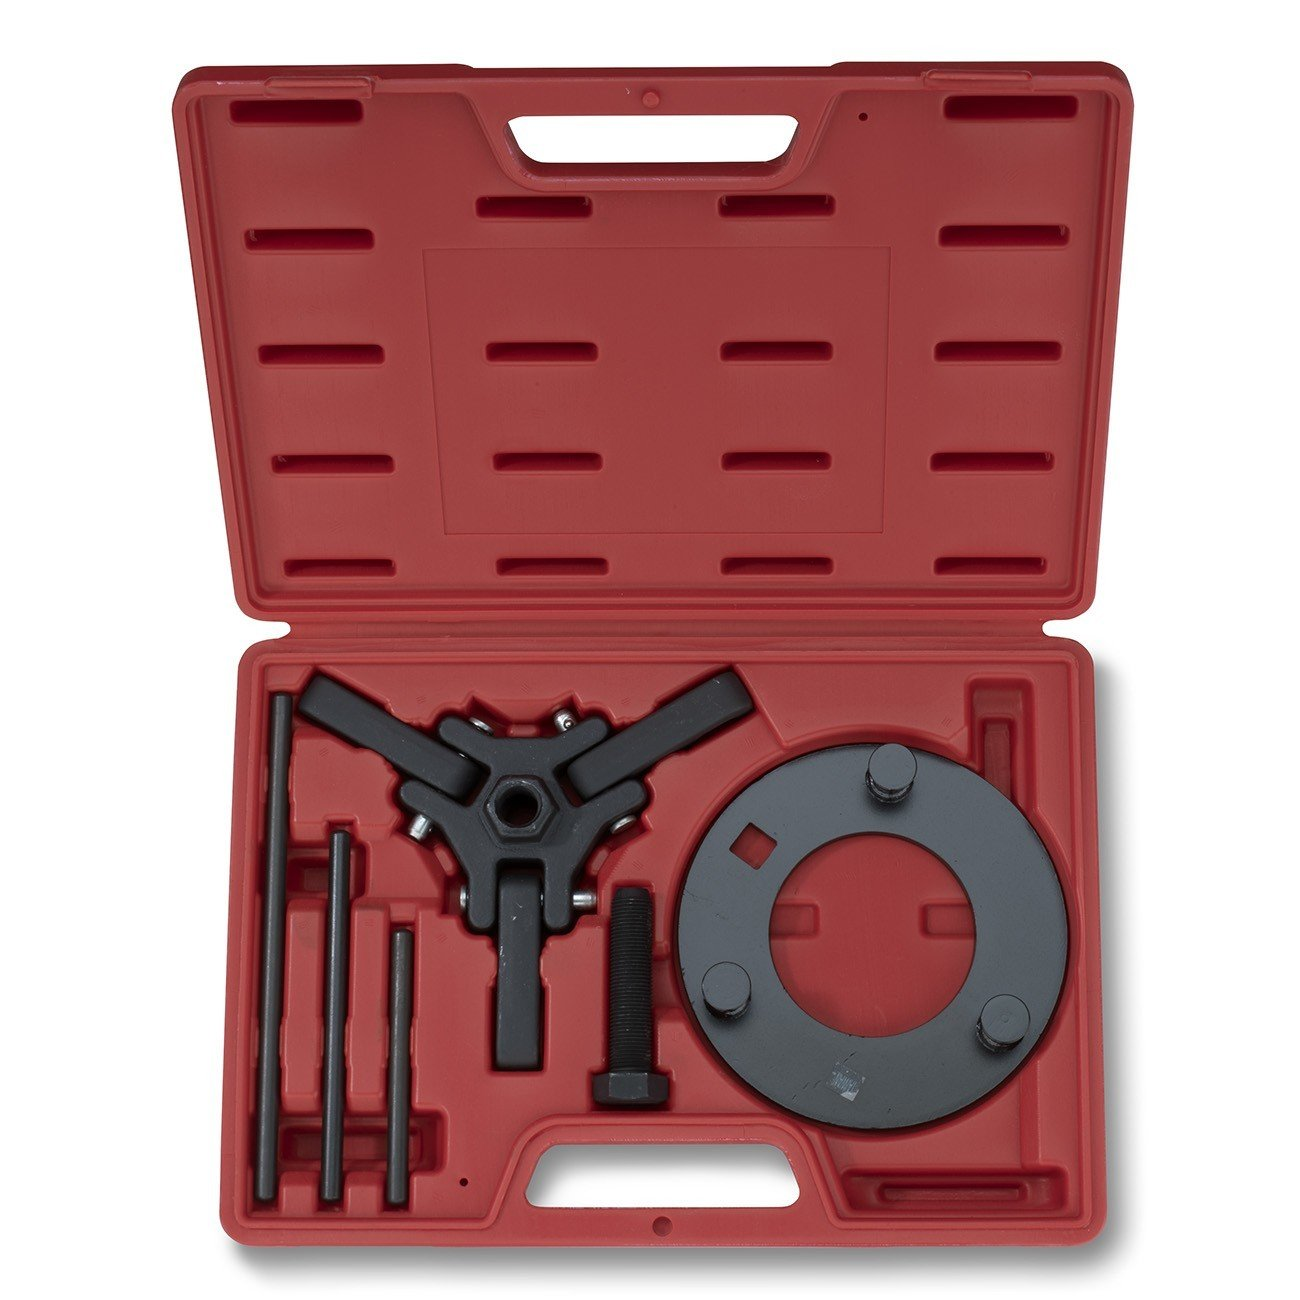 Neiko 20720A Automotive Harmonic Balancer Puller Tool Set | Includes 3-Jaw Puller and Holding Tools